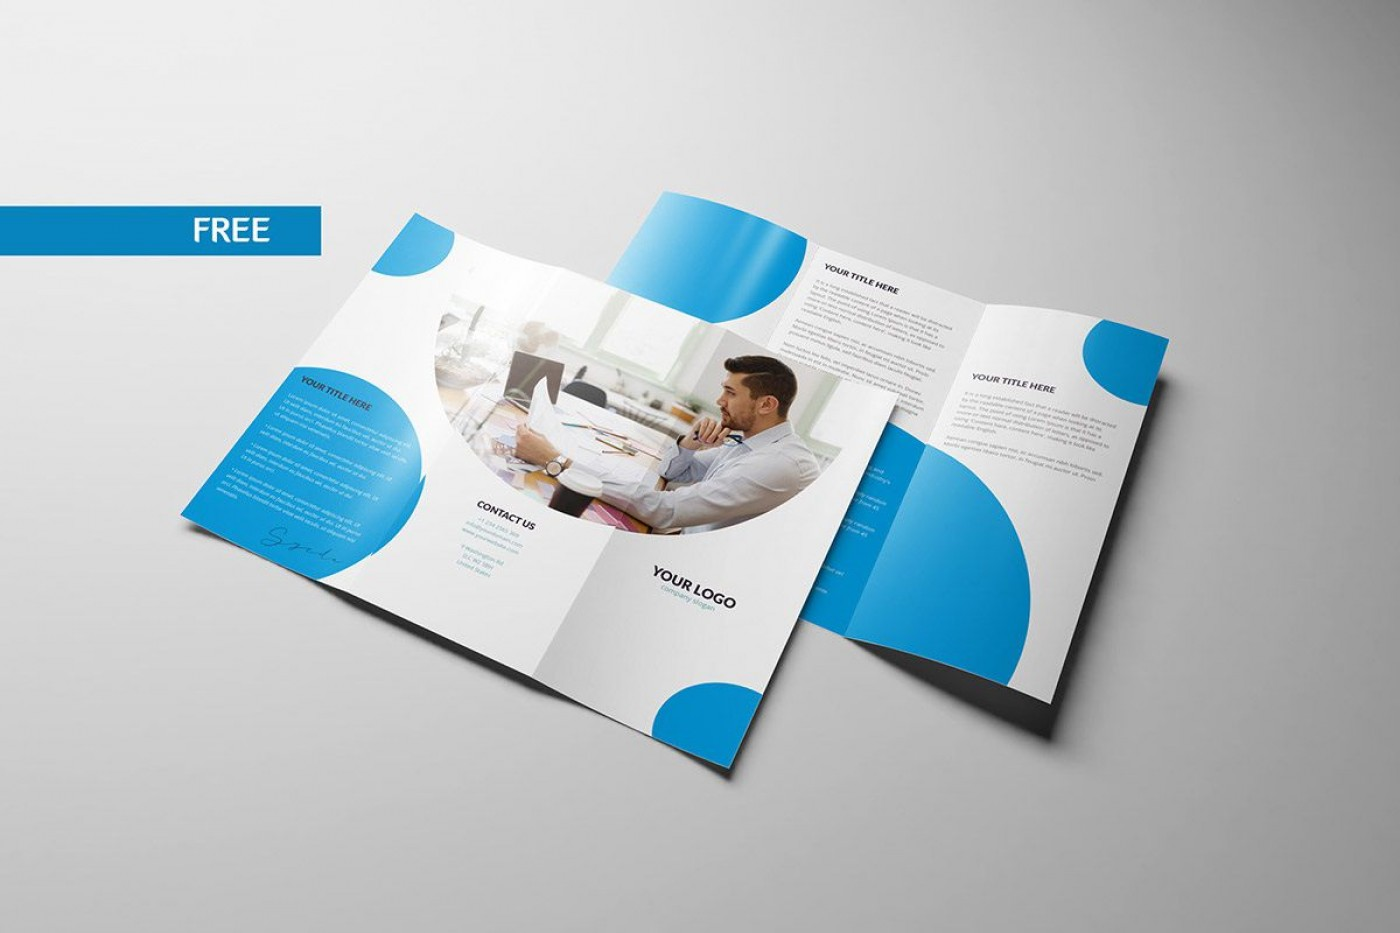 006 Unbelievable Brochure Template Photoshop Cs6 Free Download Example 1400